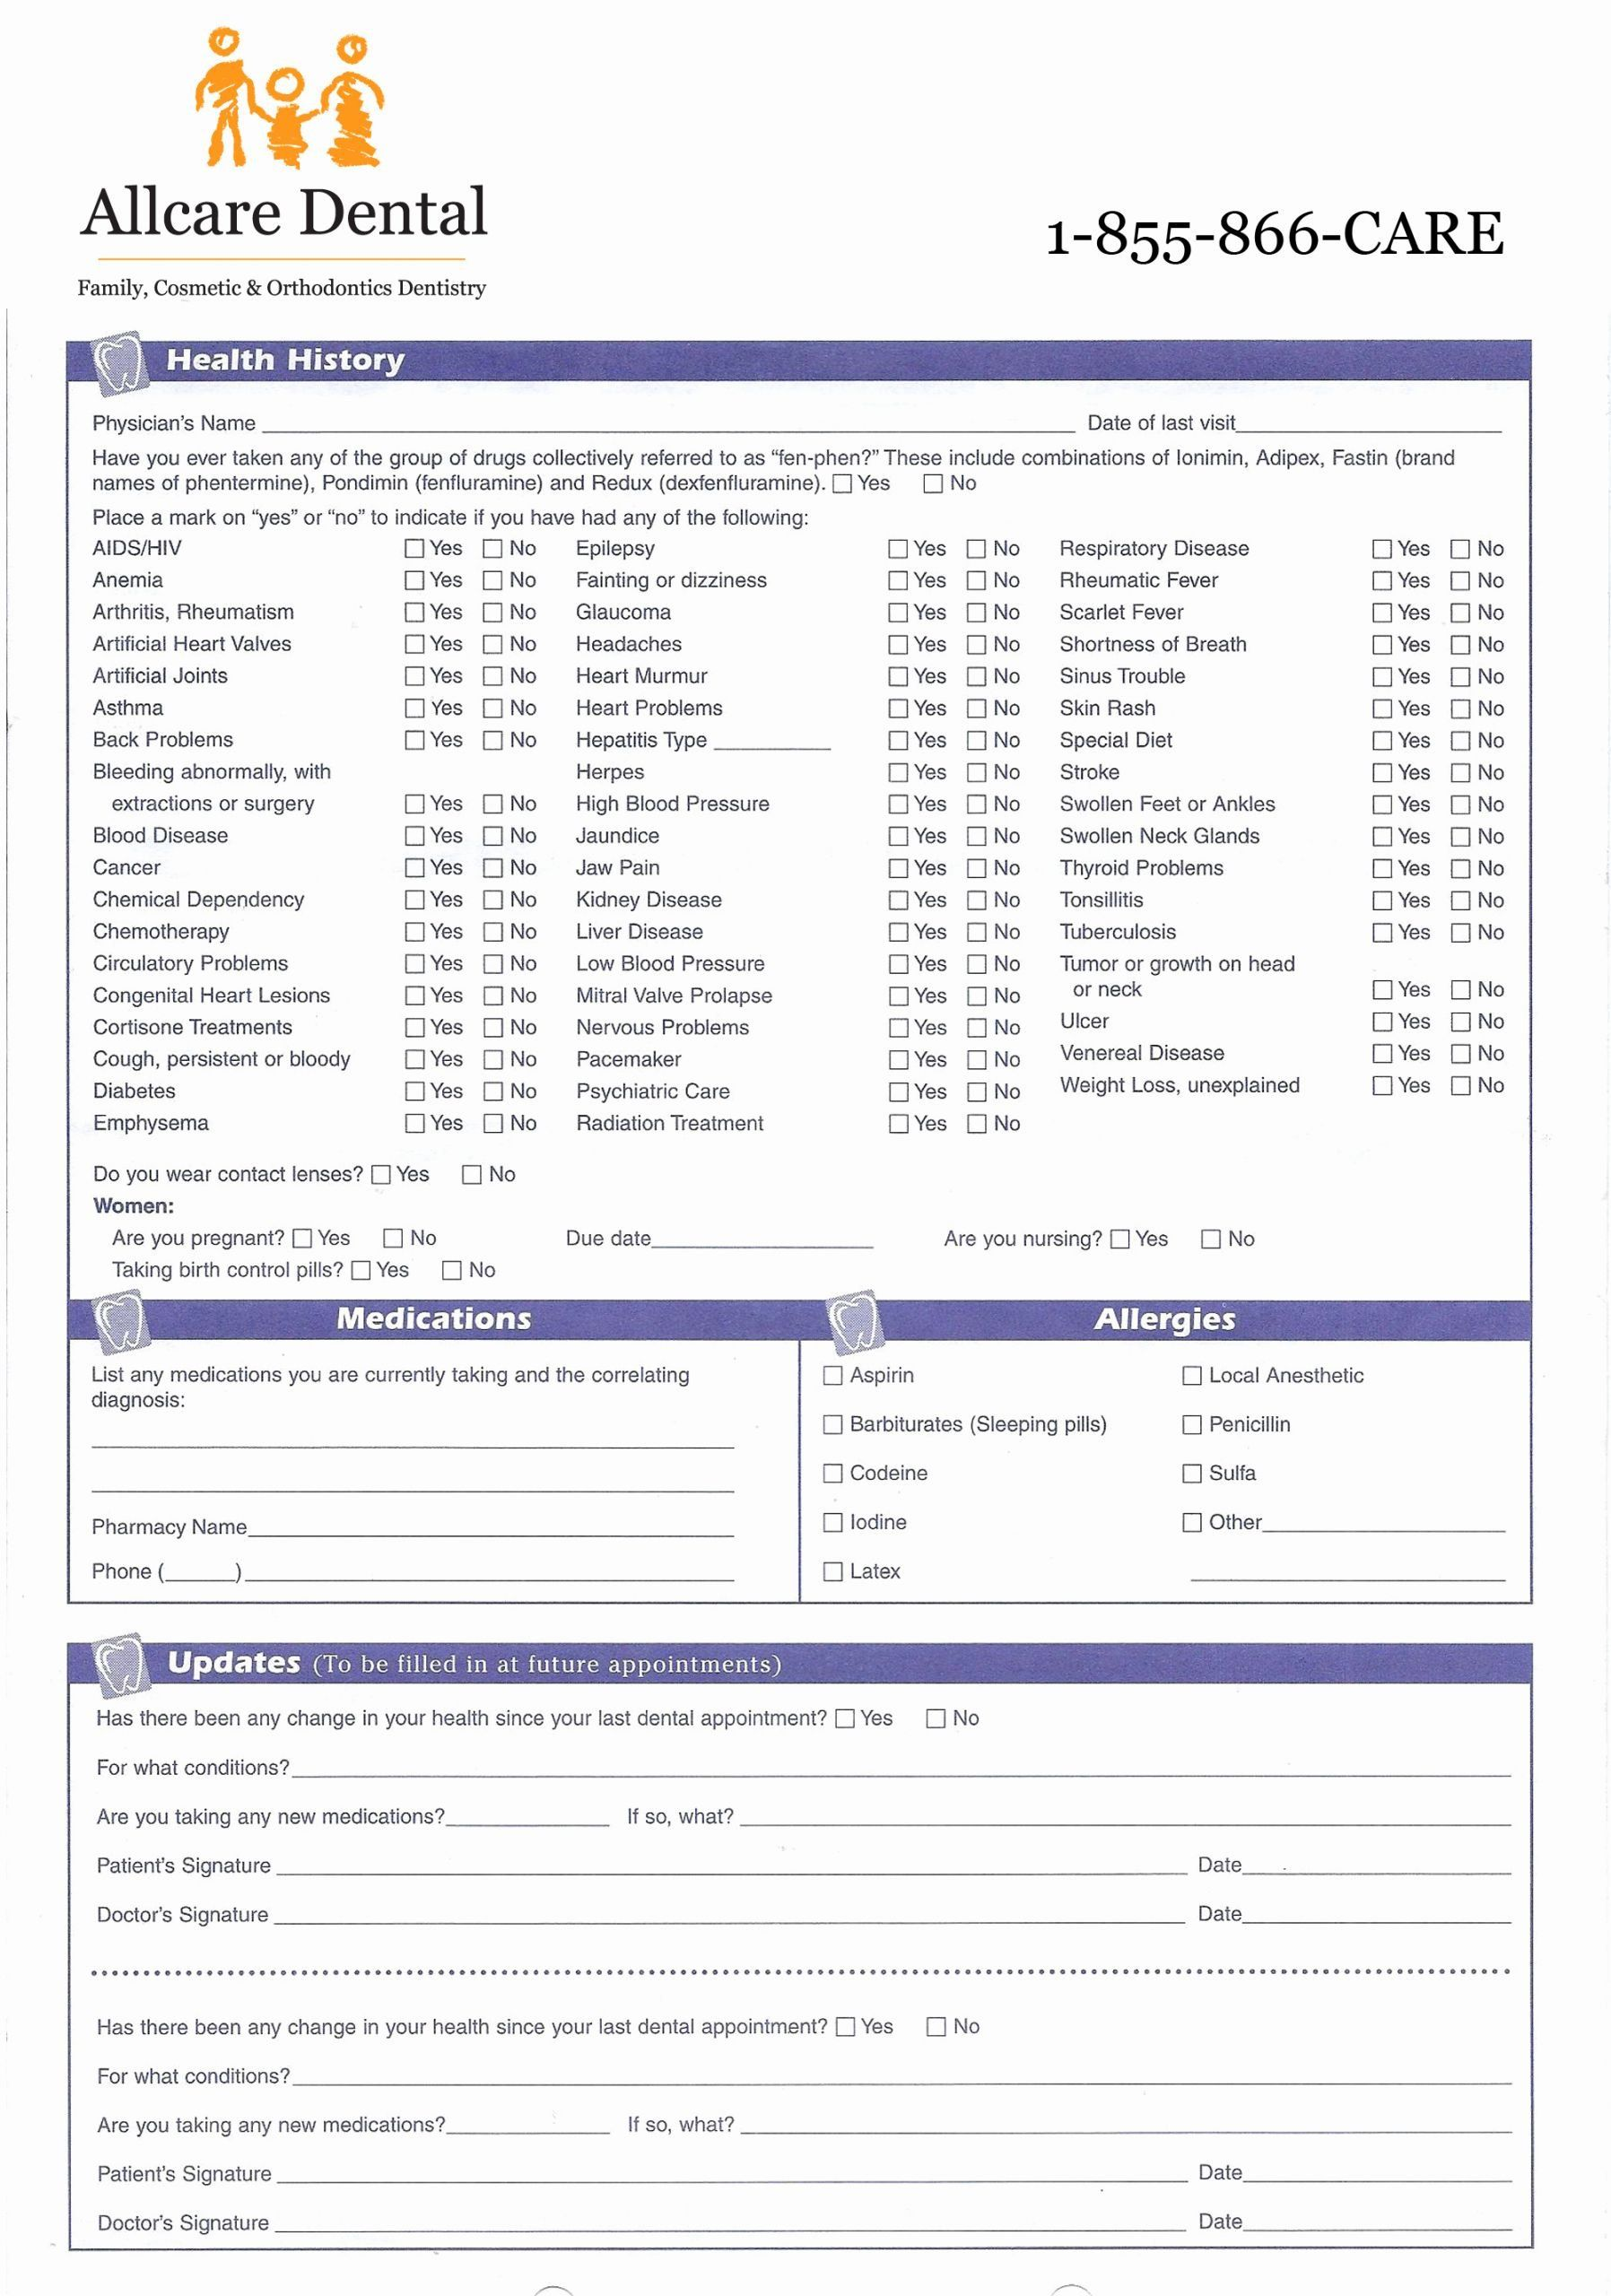 Dental Medical History Form Template Awesome Medical History Form For Dental Fice Medical History Dental Health History Form Dental medical history update form template